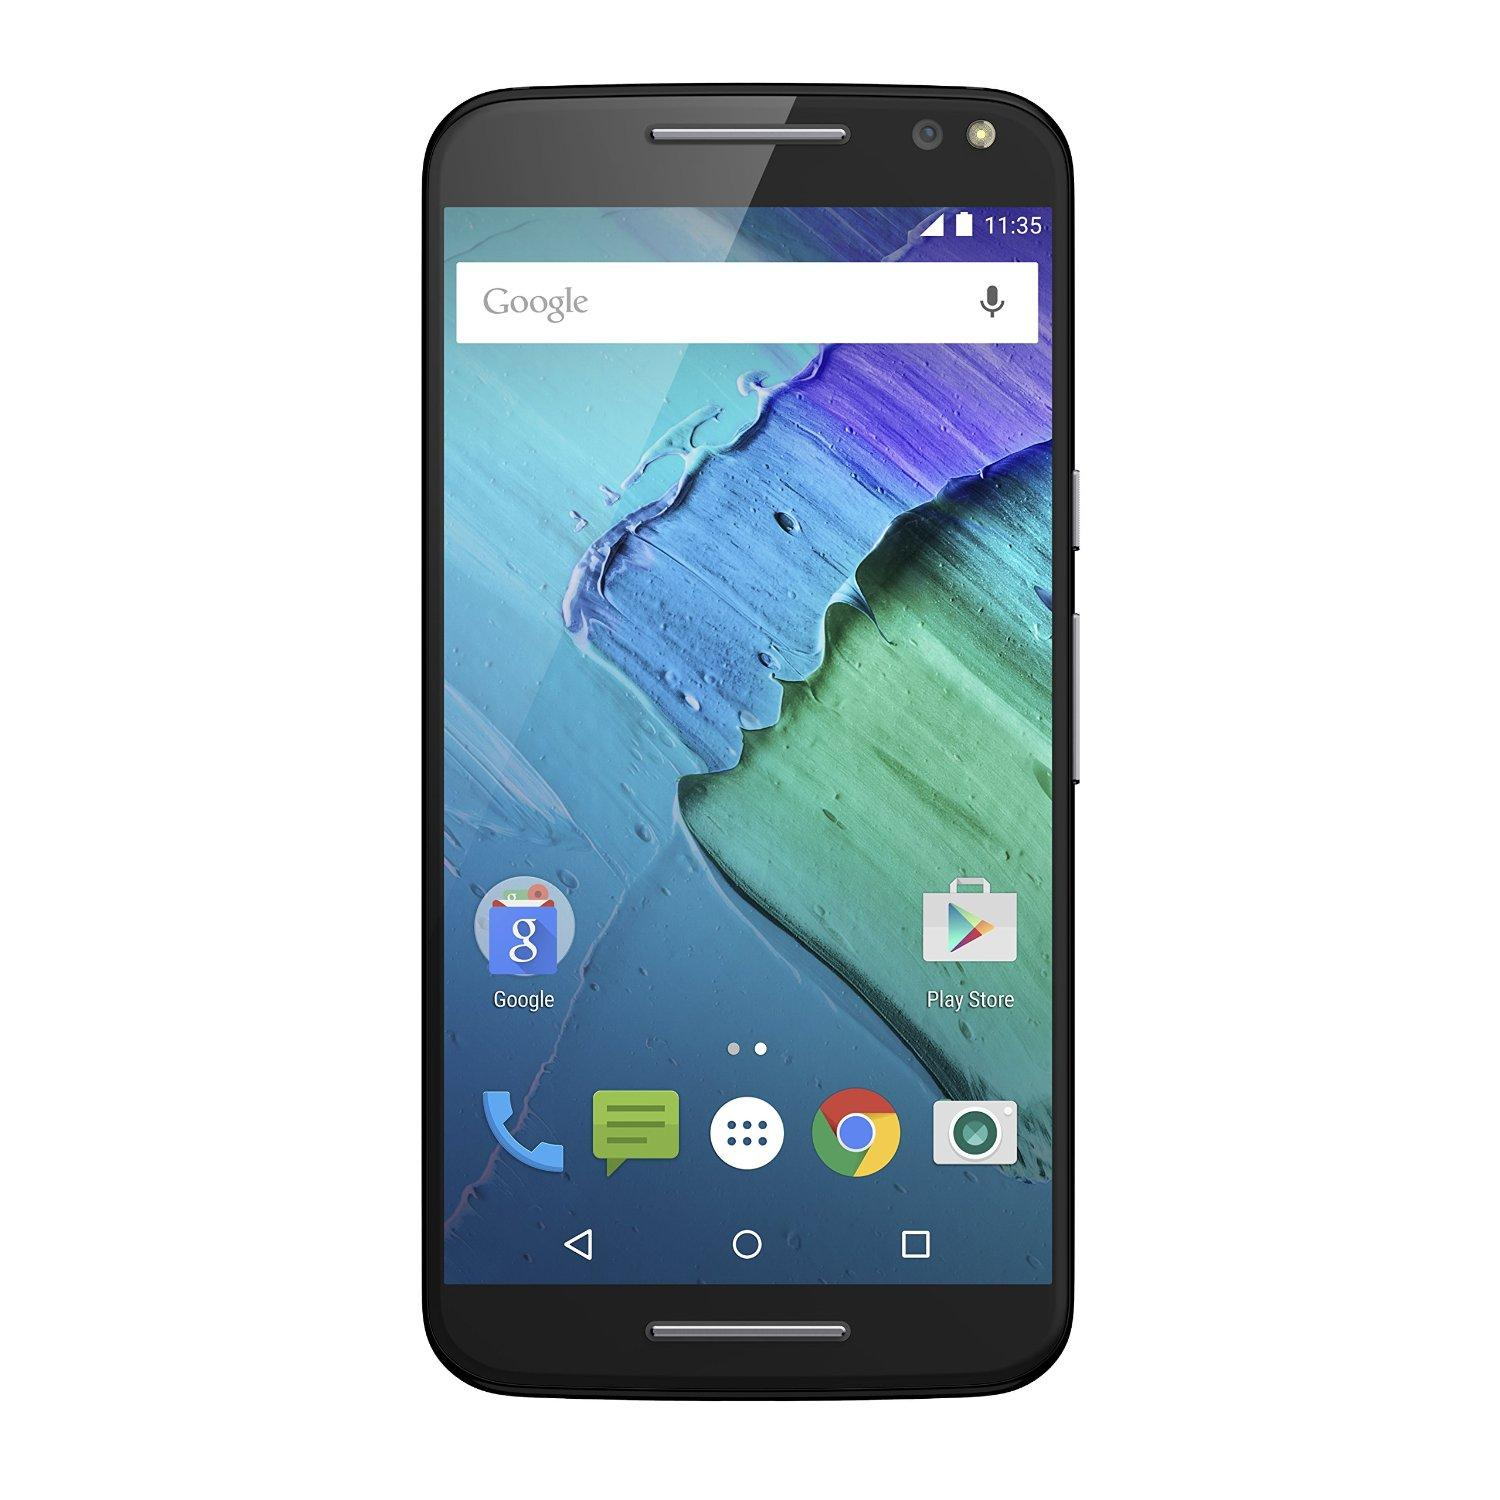 Moto X Pure Edition Unlocked Smartphone, 32GB Black (U.S. Warranty - XT1575)